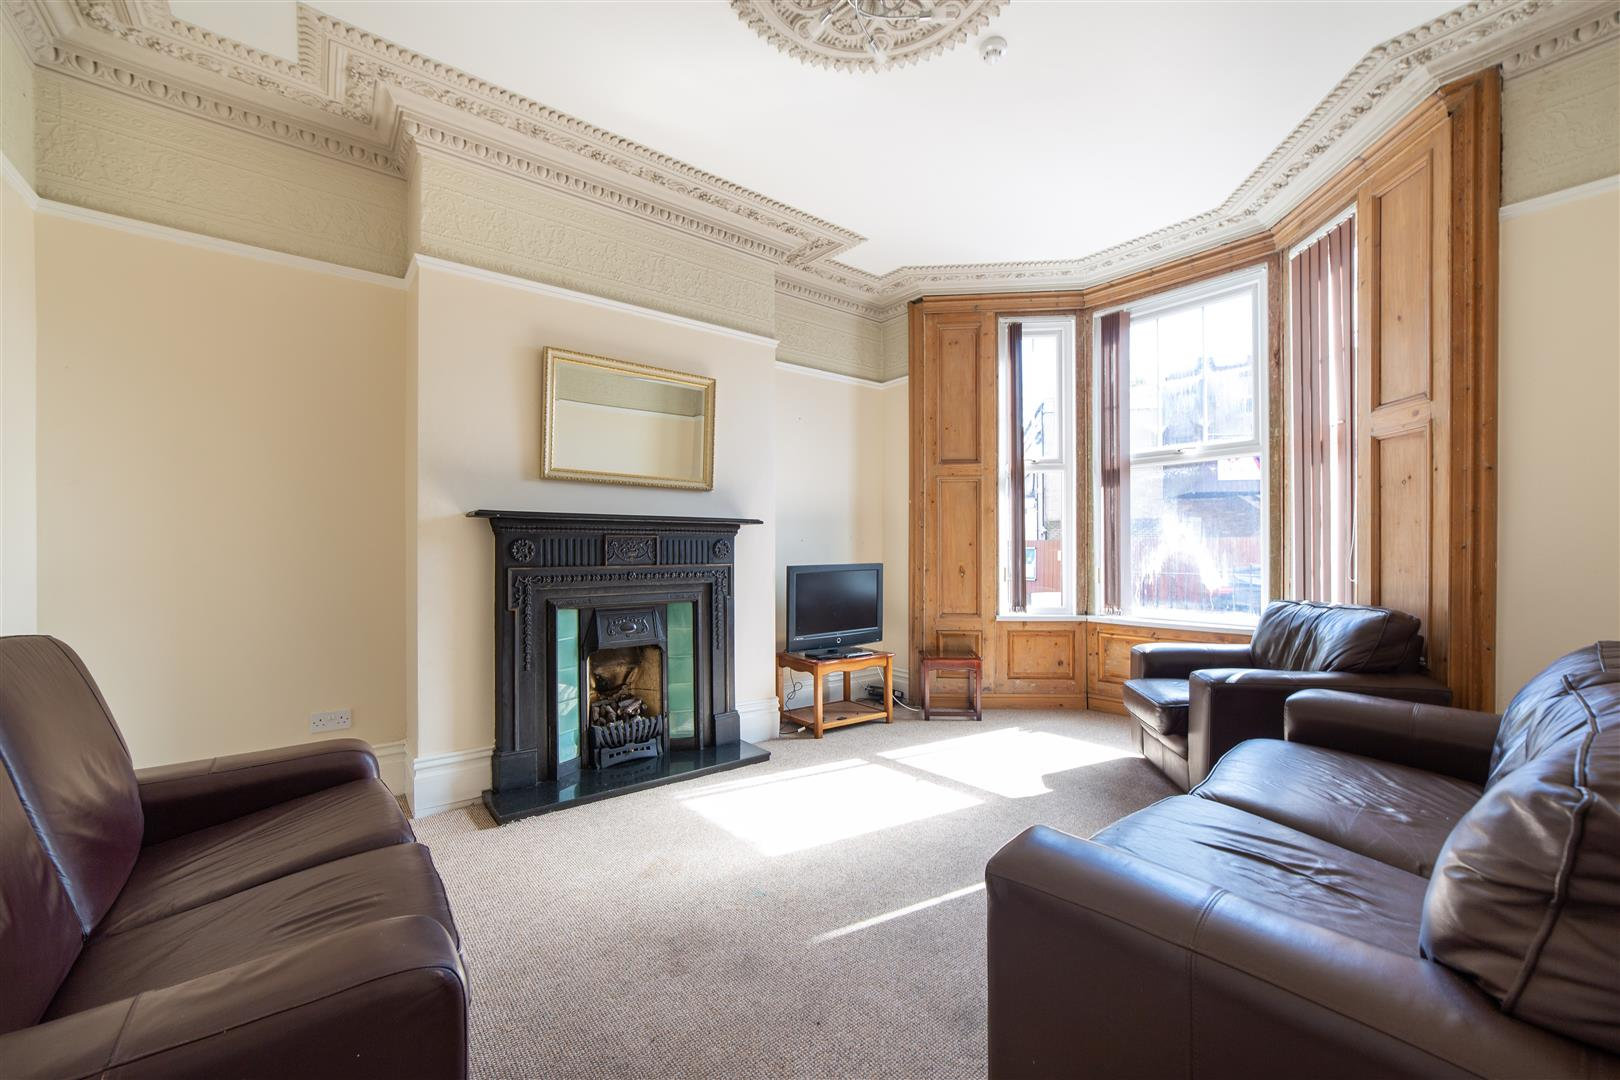 8 bed terraced house to rent in Newcastle Upon Tyne, NE2 1JS 3